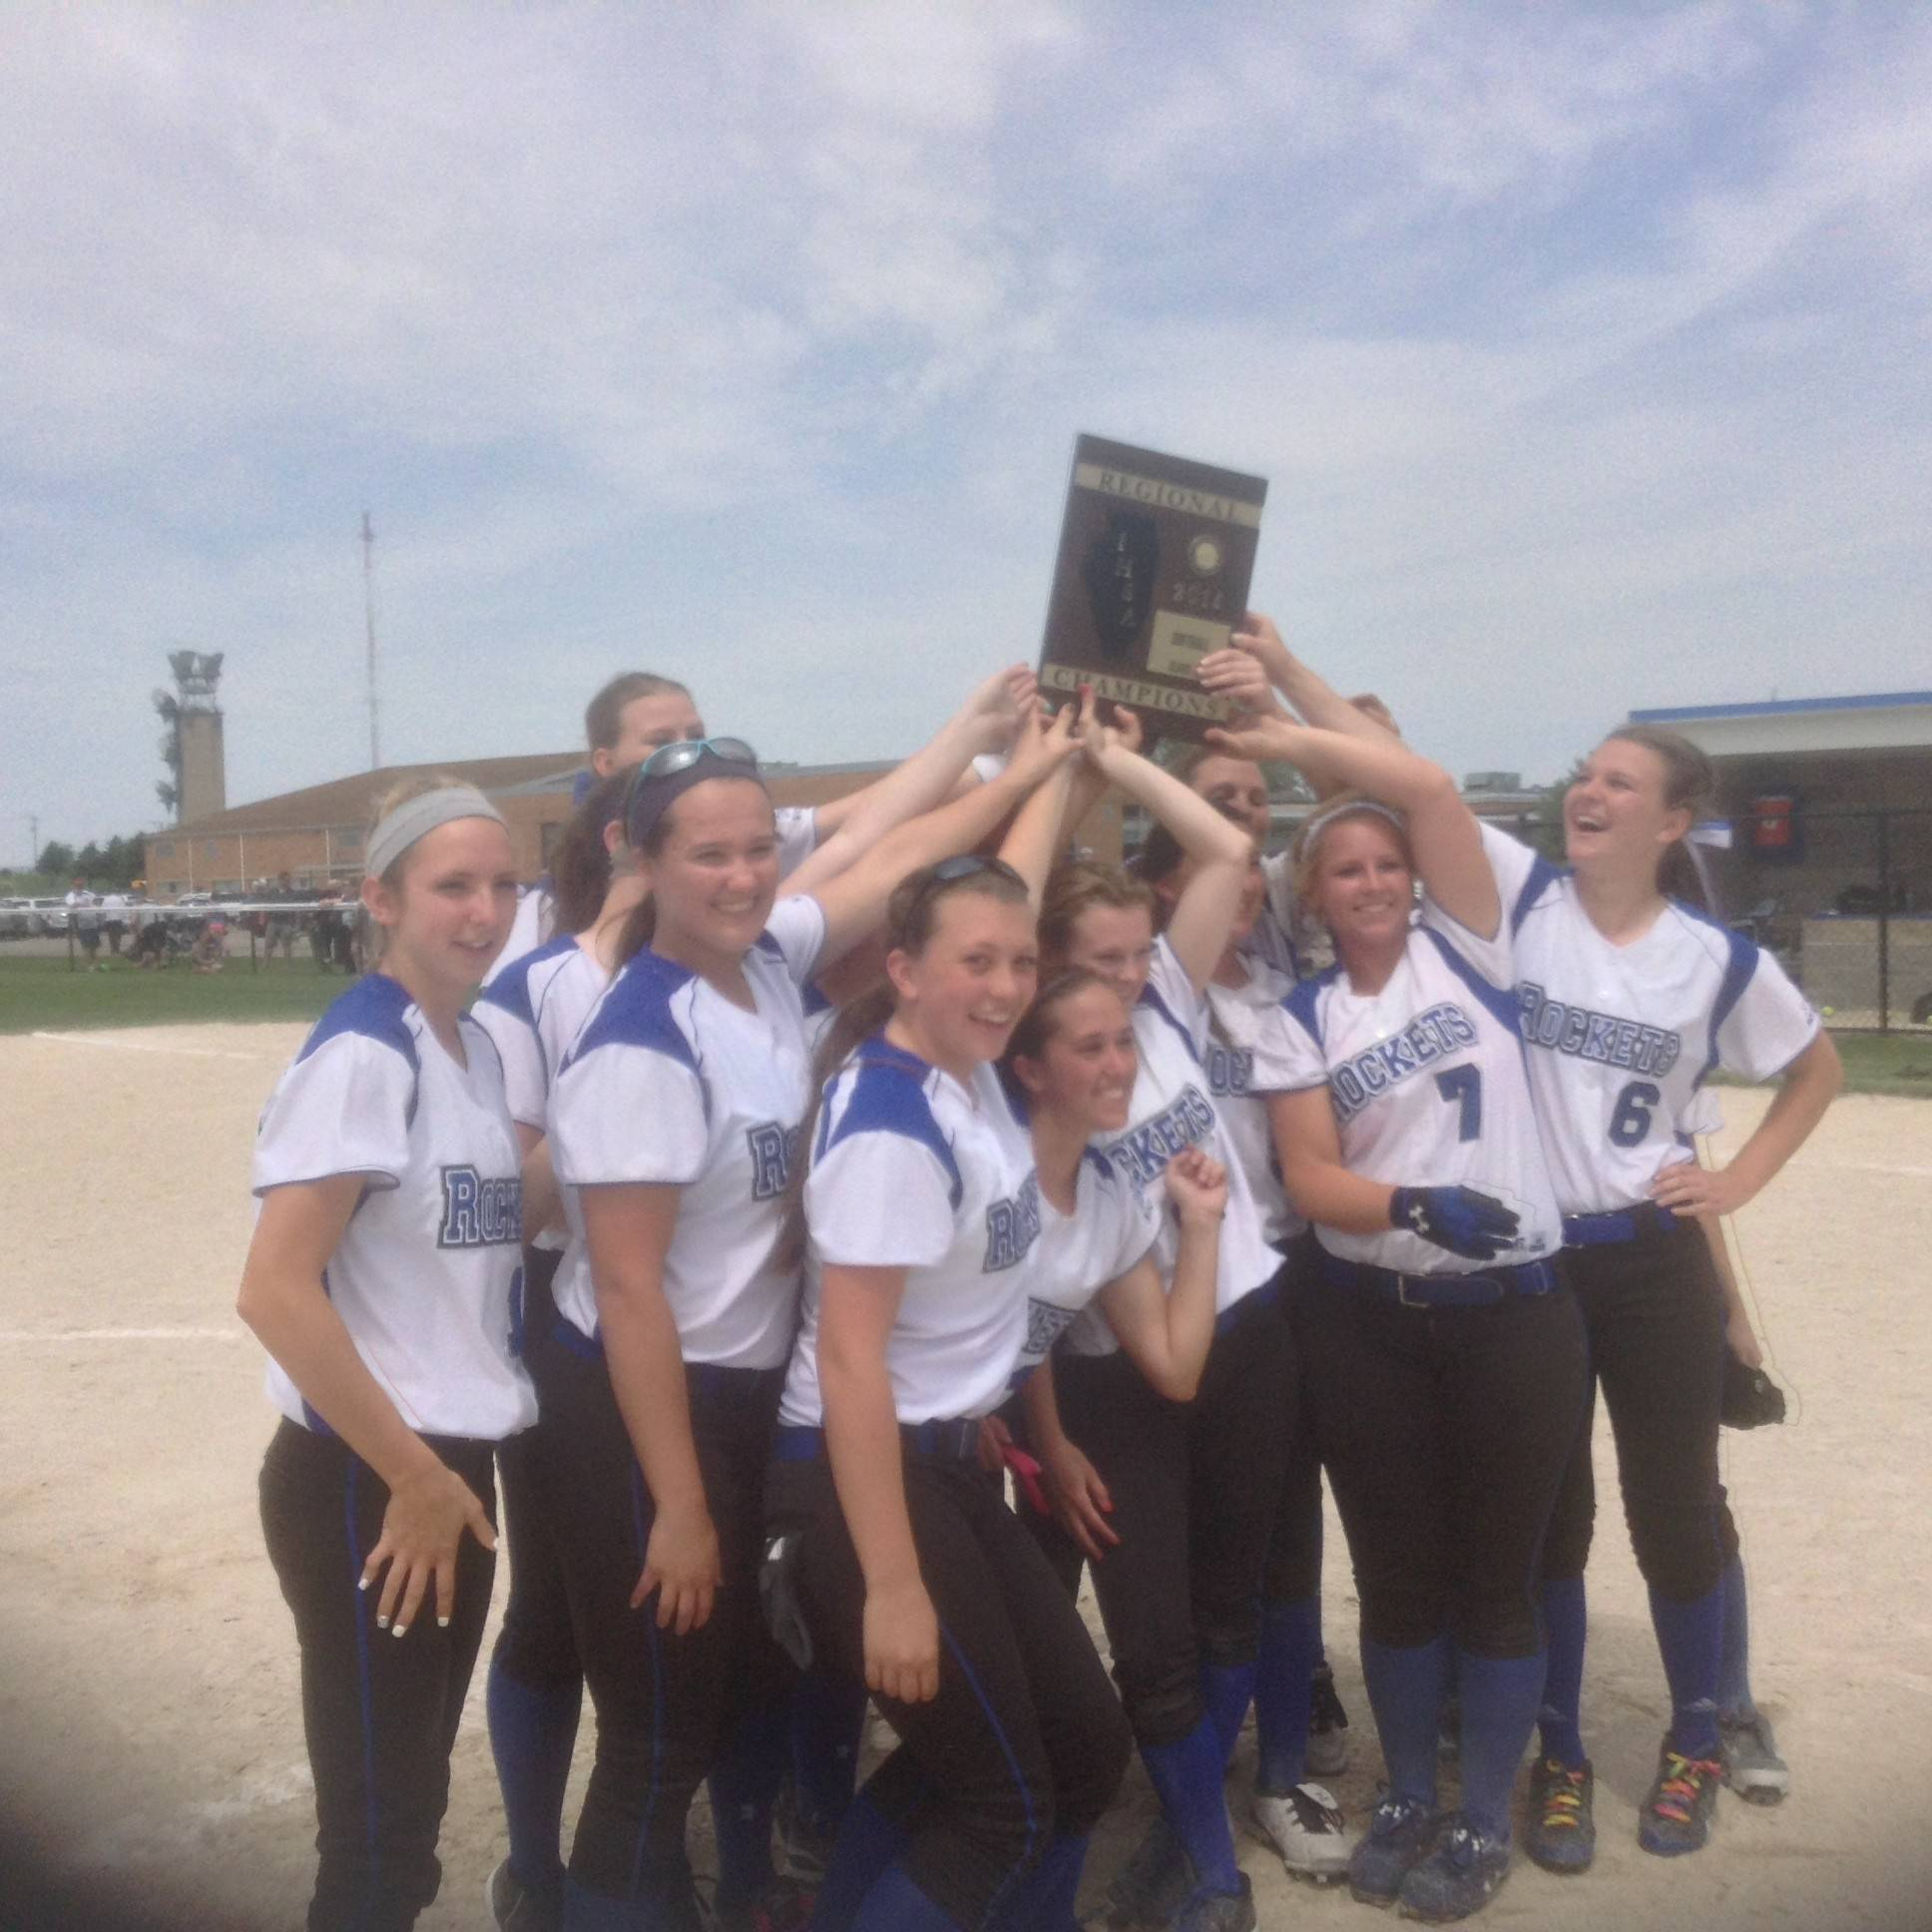 The Burlington Central softball team celebrates its Class 3A regional championship win over Kaneland Saturday at Burlington.